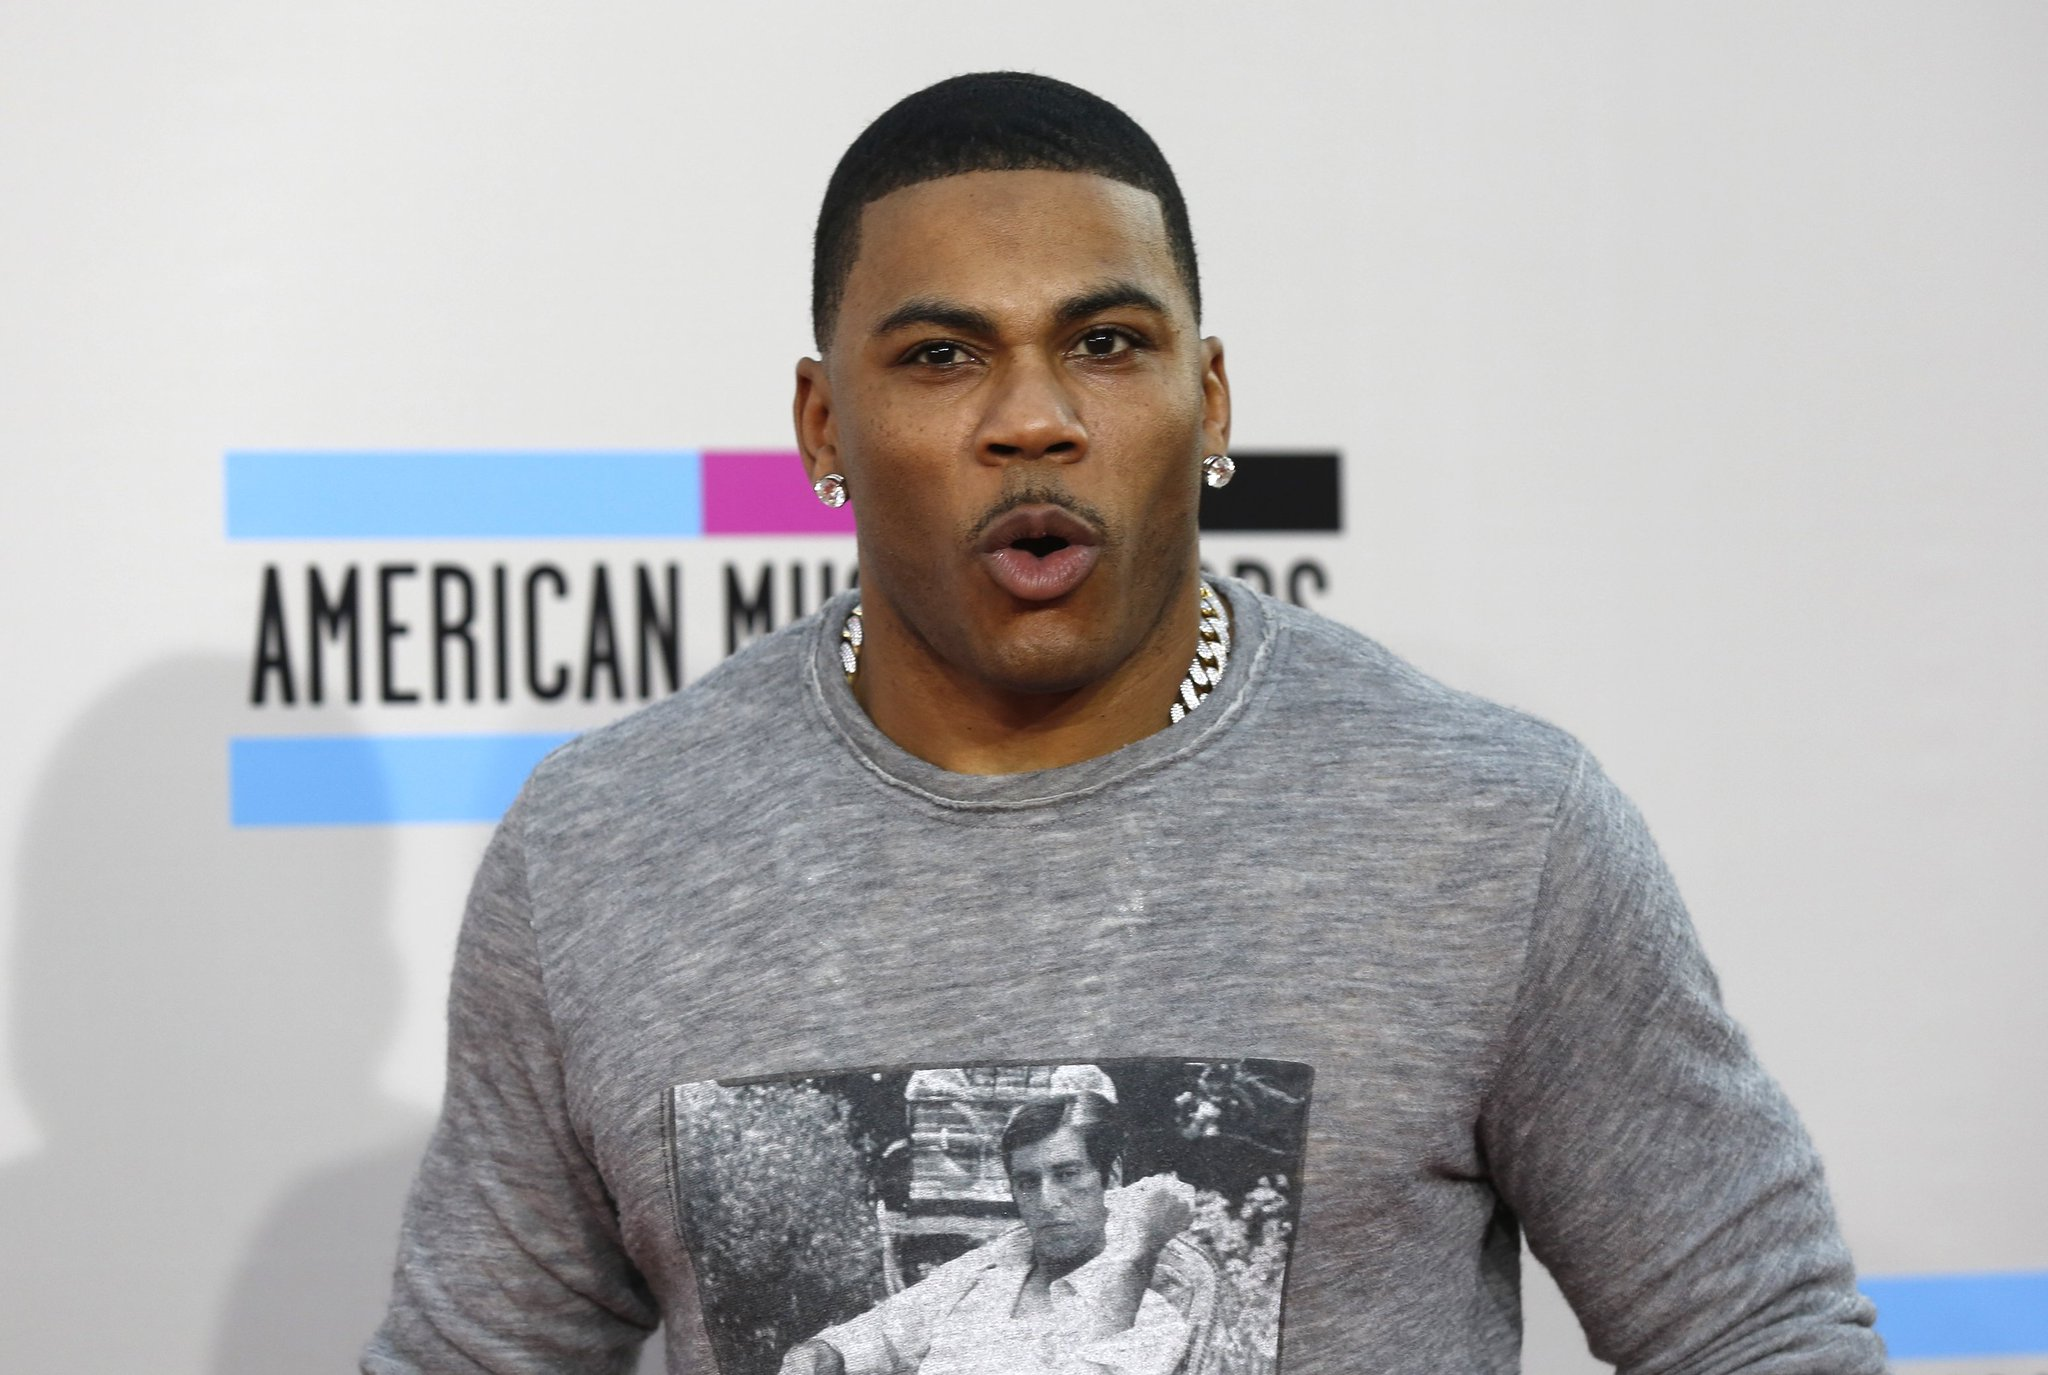 Rapper Nelly has been arrested after being accused of raping a woman on his tour bus near Seattle. https://t.co/fnXZypWETS